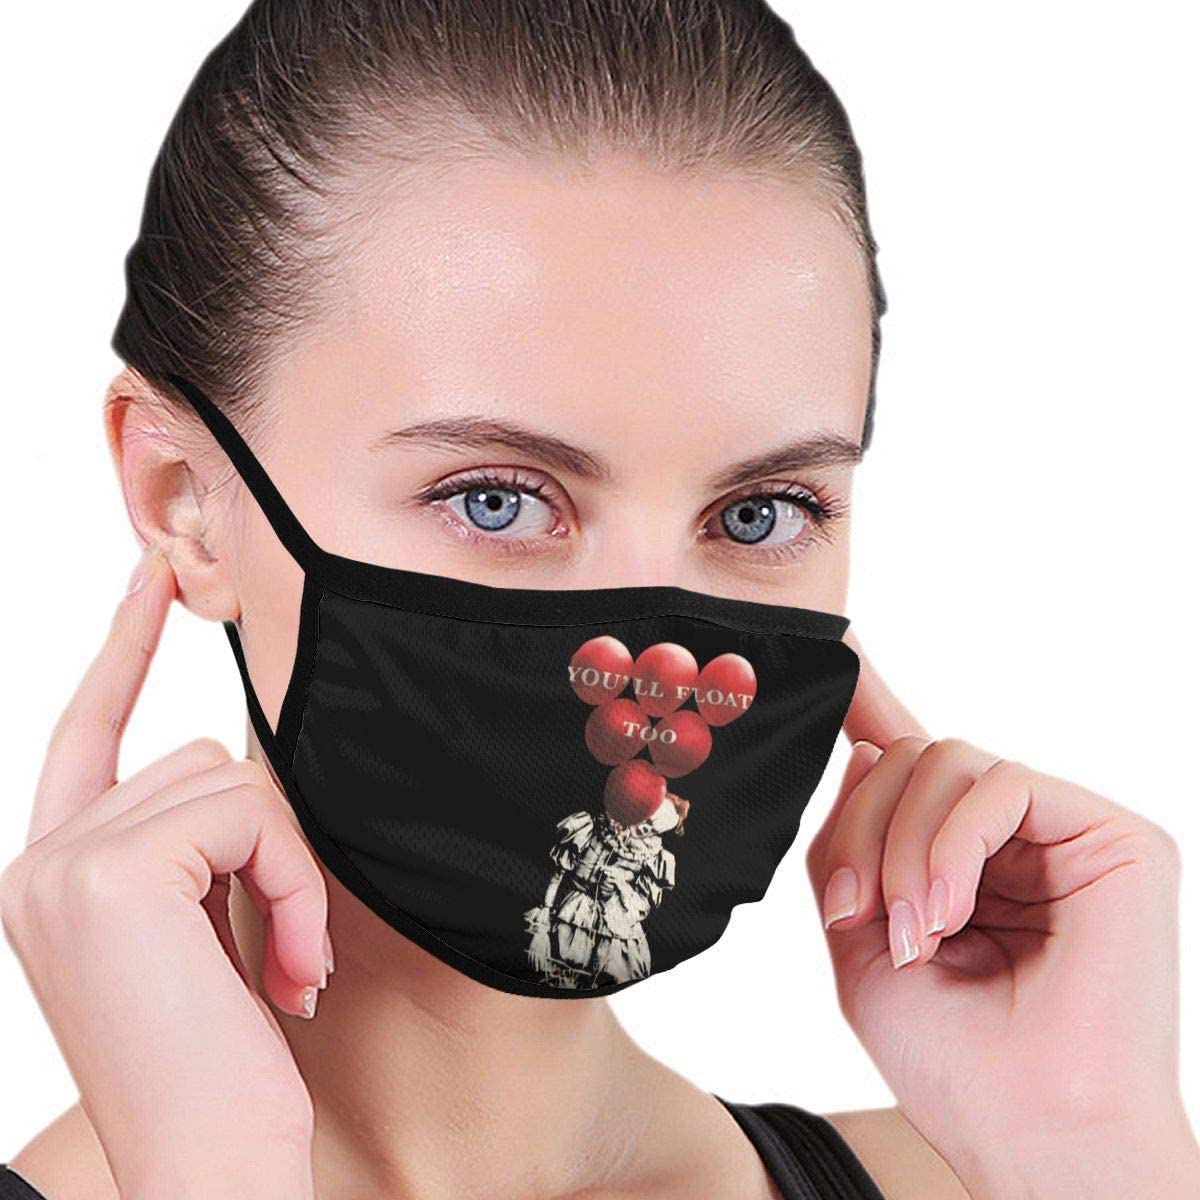 Qwtykeertyi it Unisex Washable and Reusable Cotton Warm Face Protection for Outdoor 6.8inch x 4.7inch